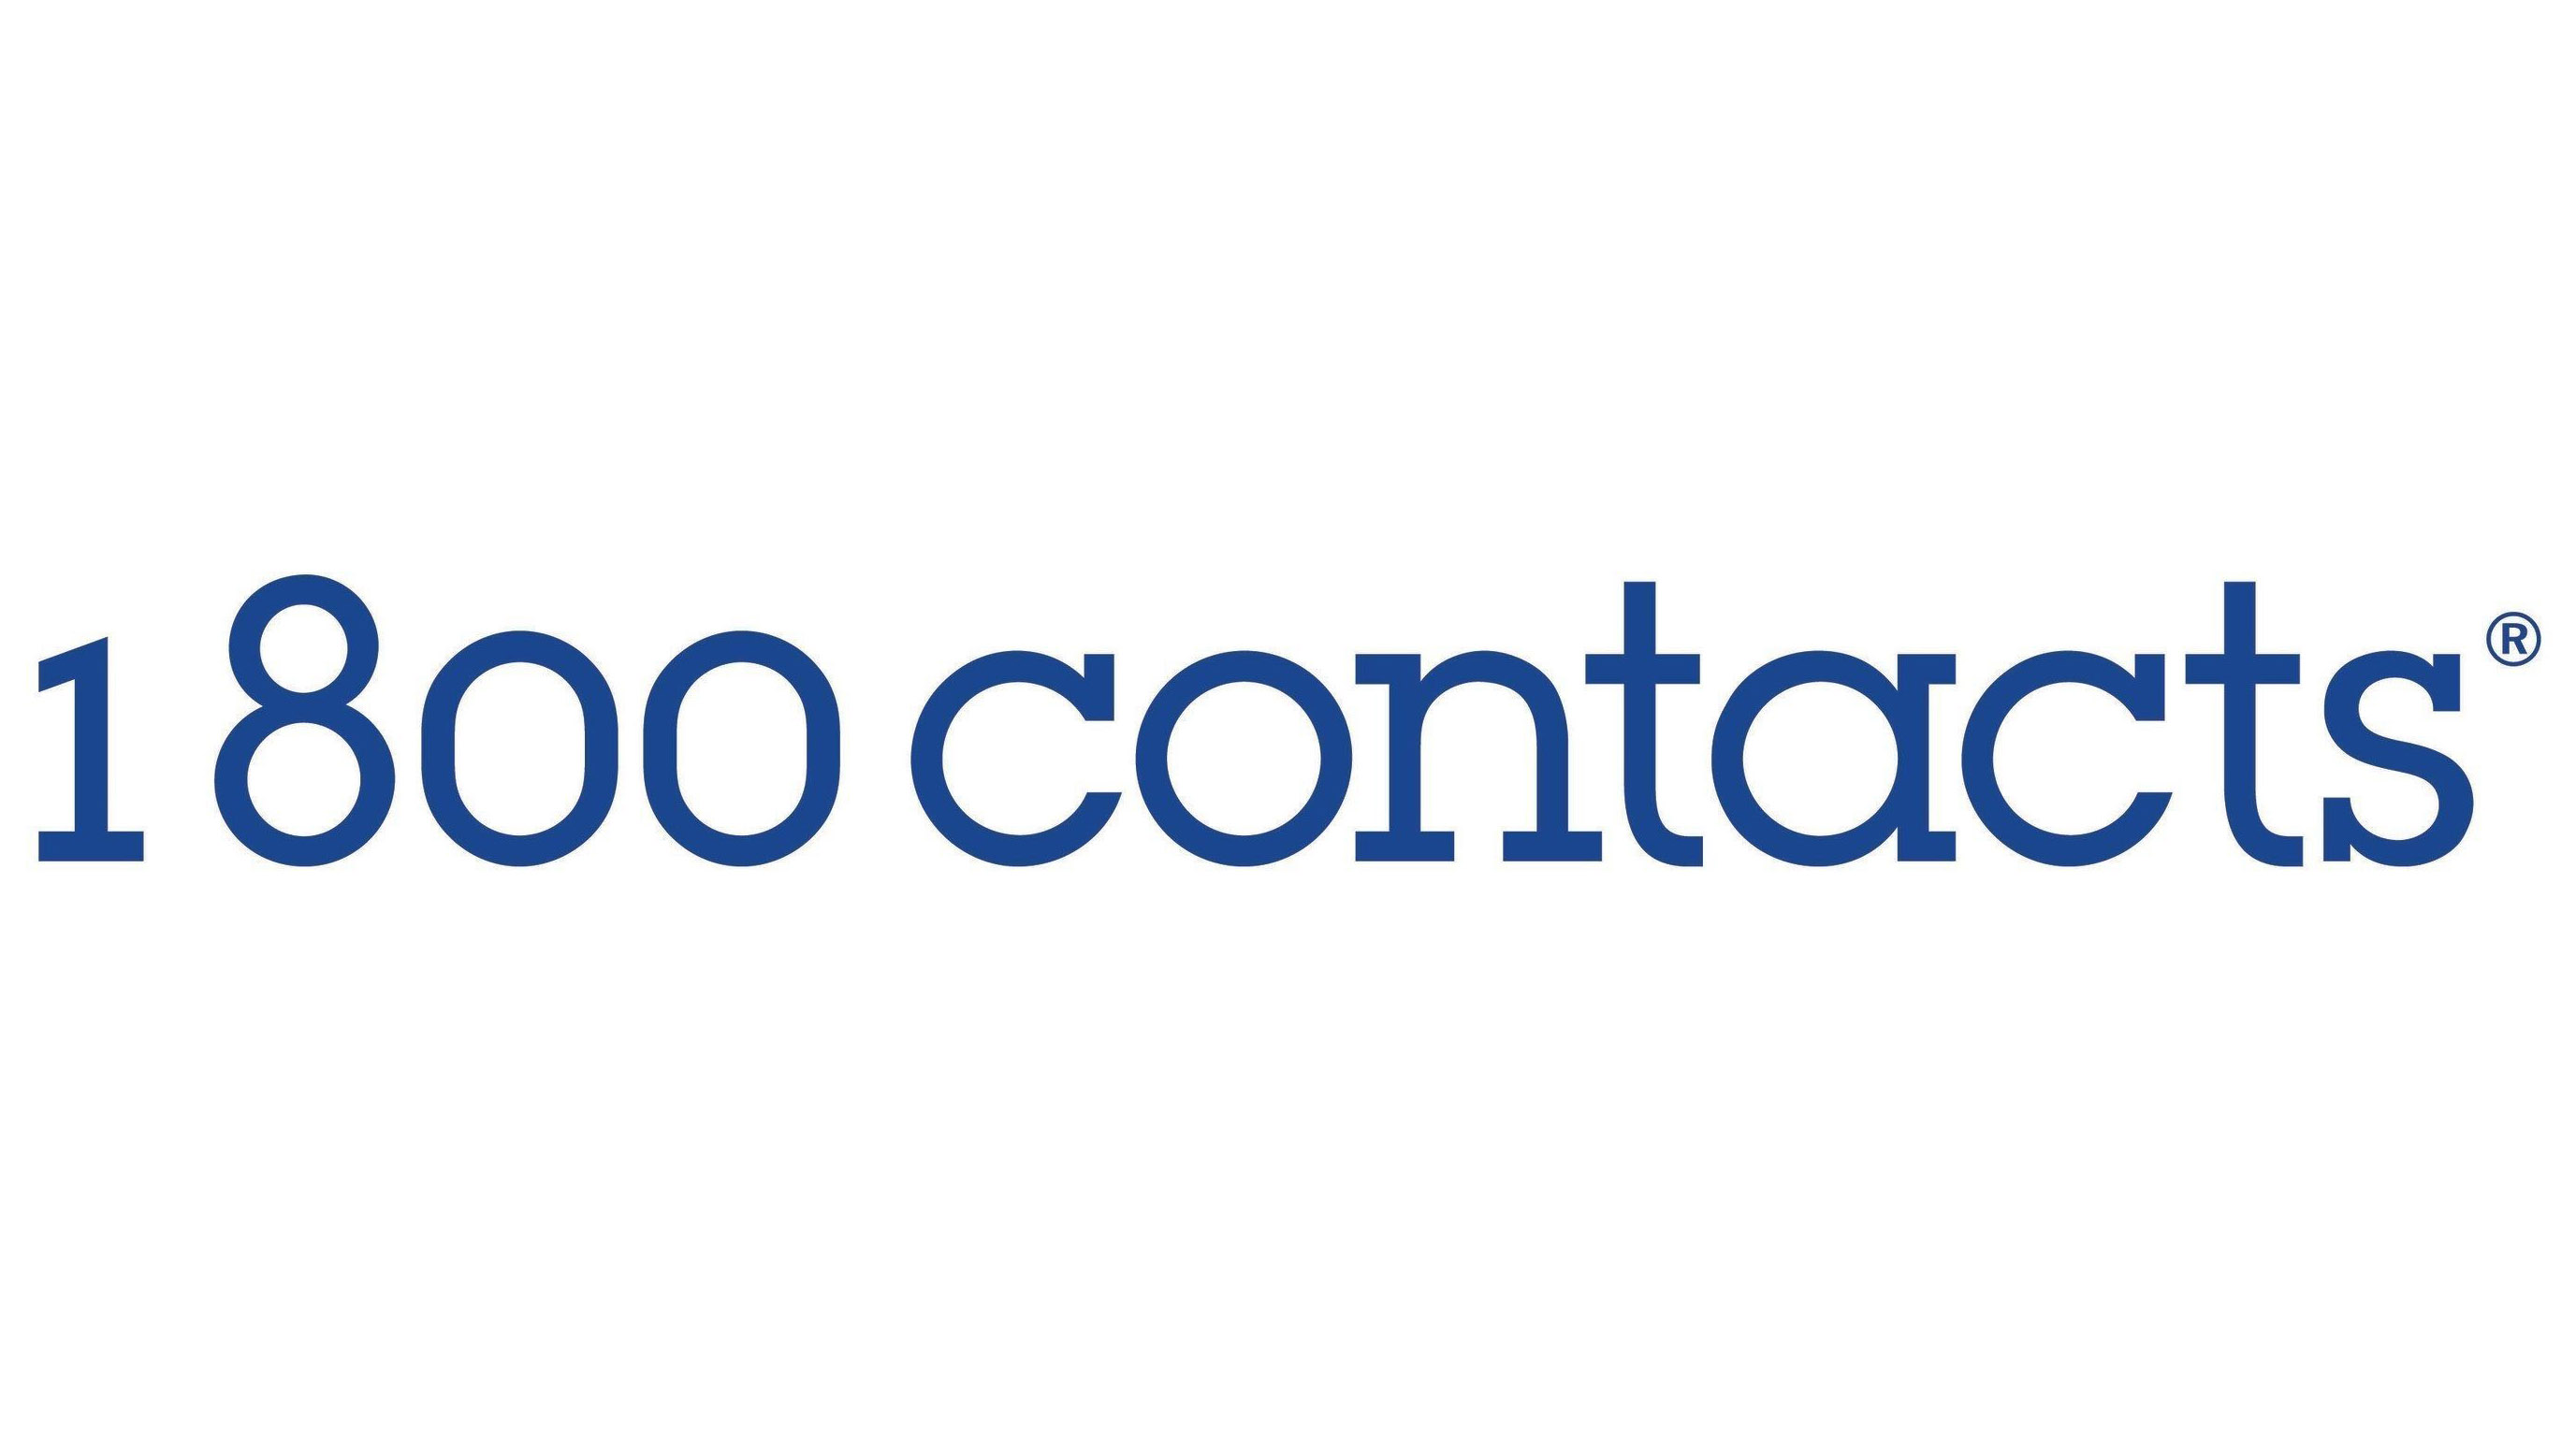 1800 Contacts coupons and promo codes